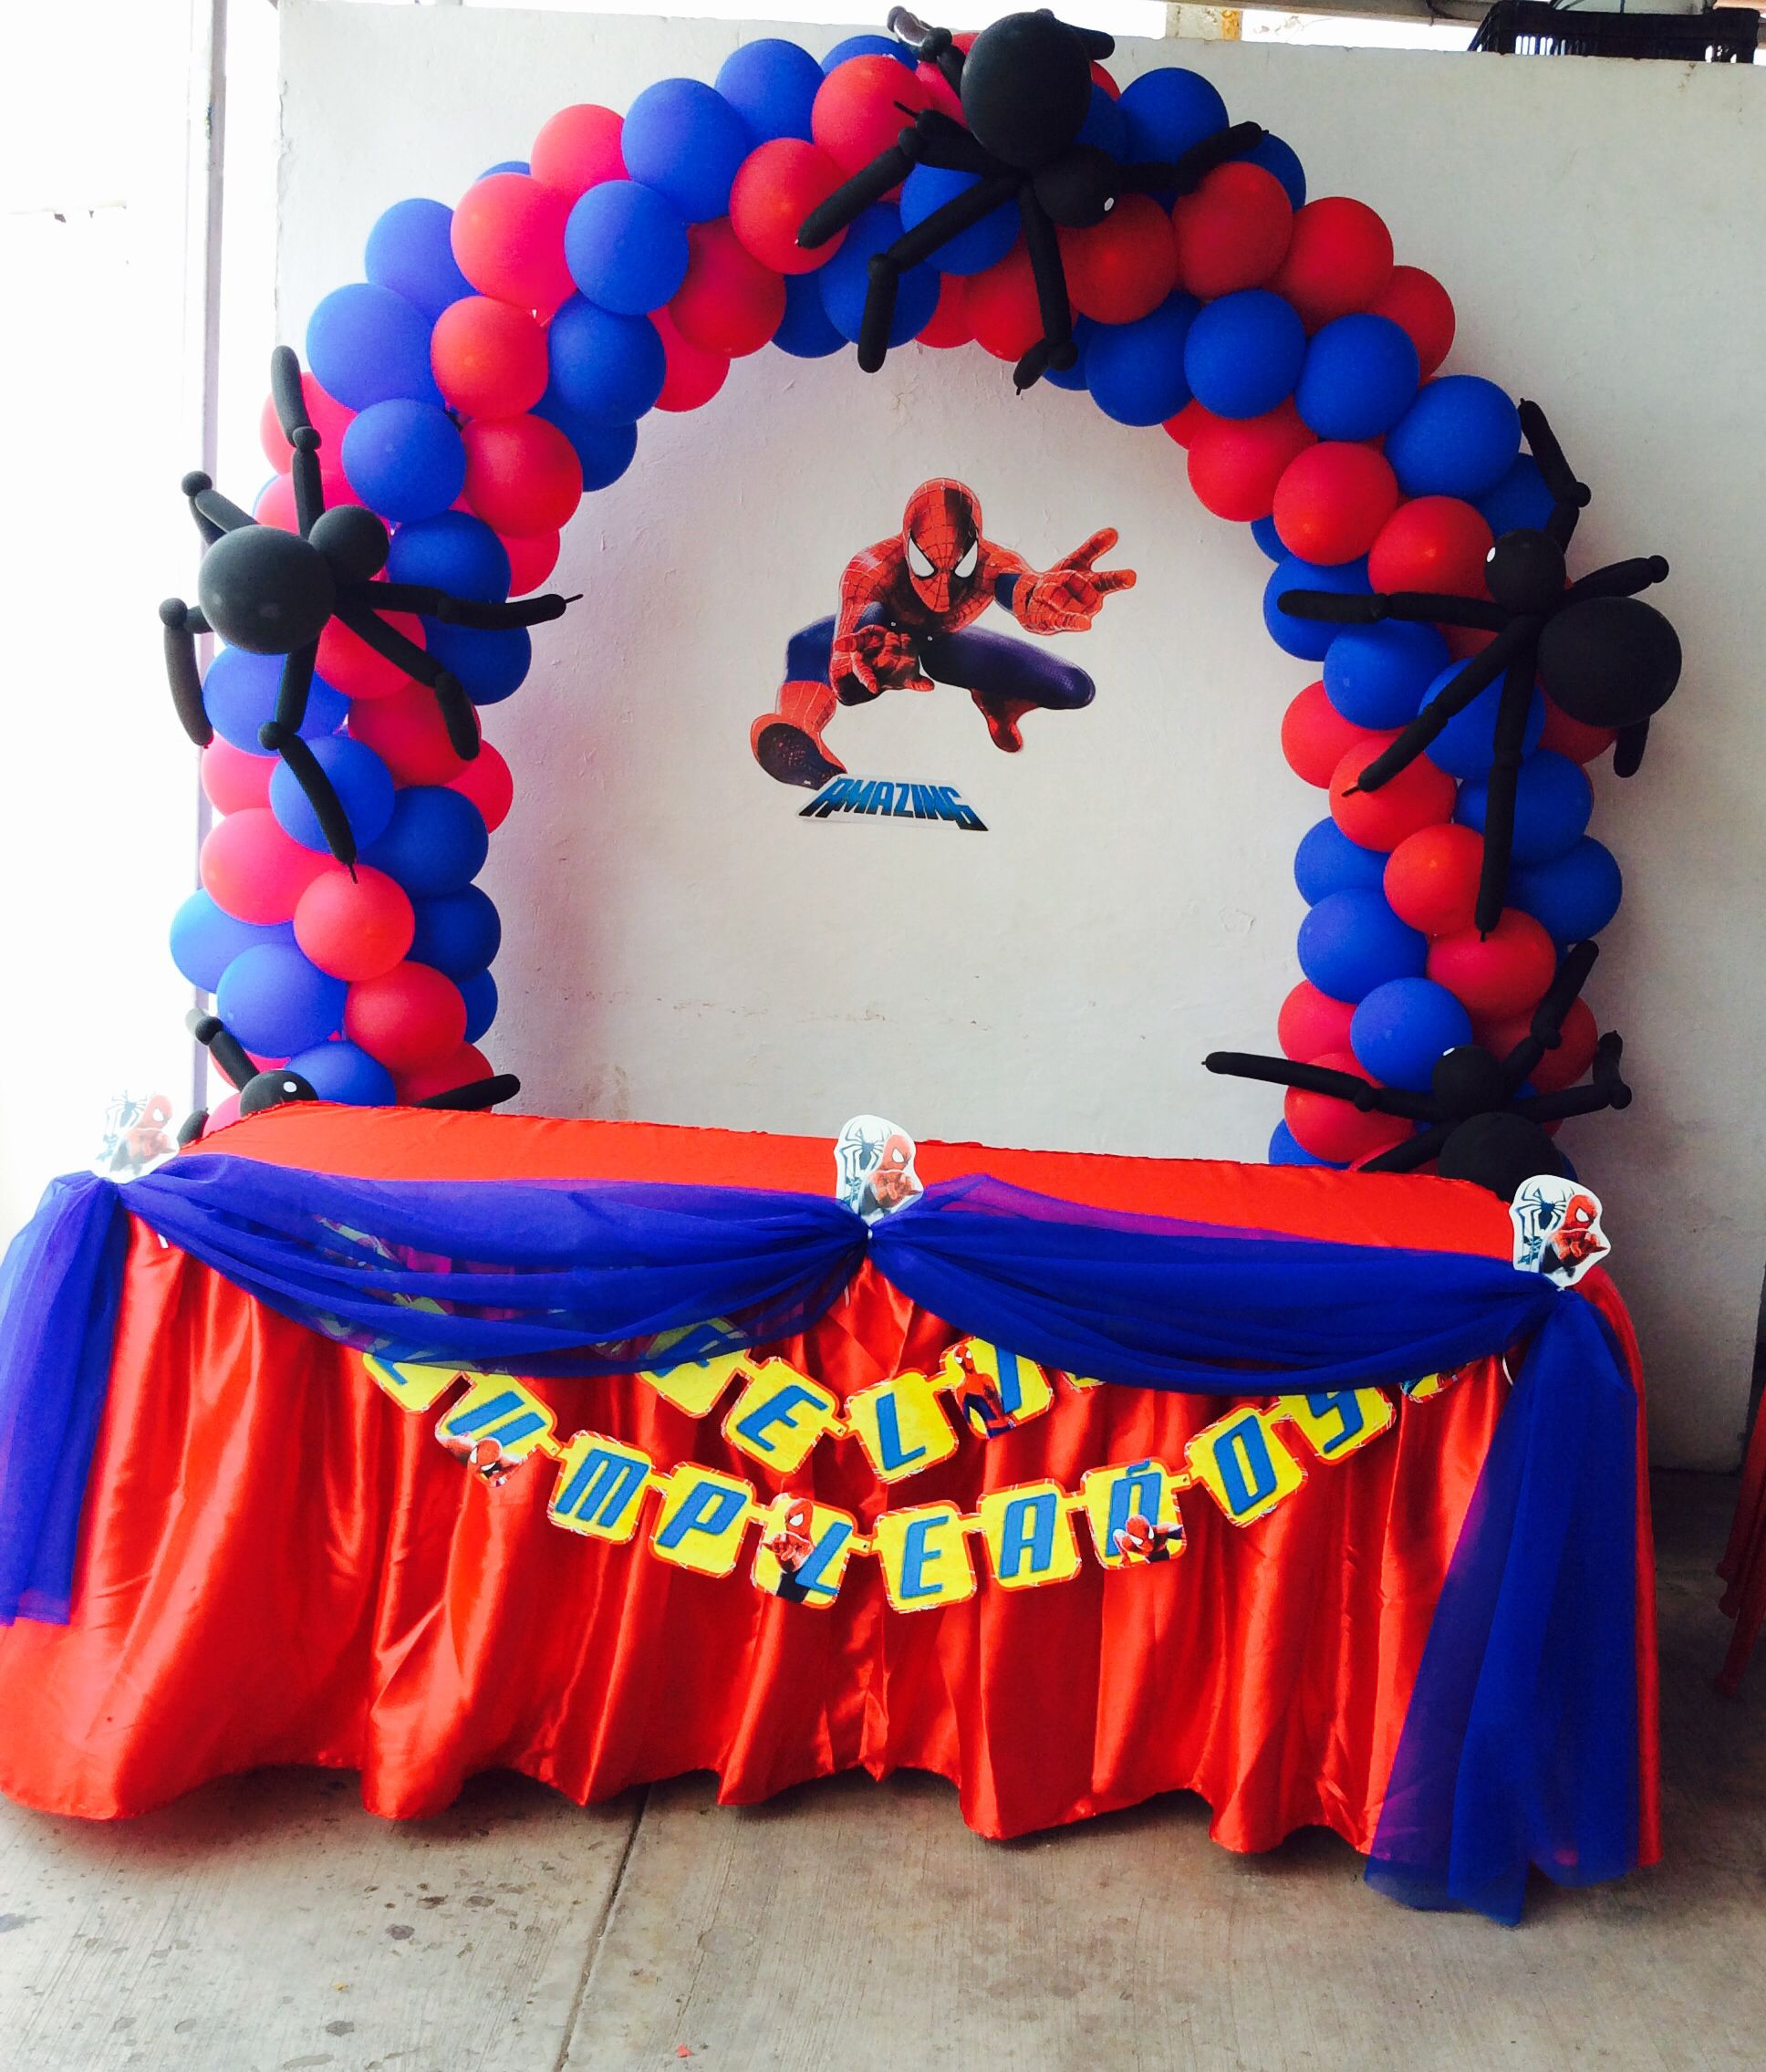 Decoracion de mesa de pastel spiderman buscar con google - Decoracion de mesas para eventos ...